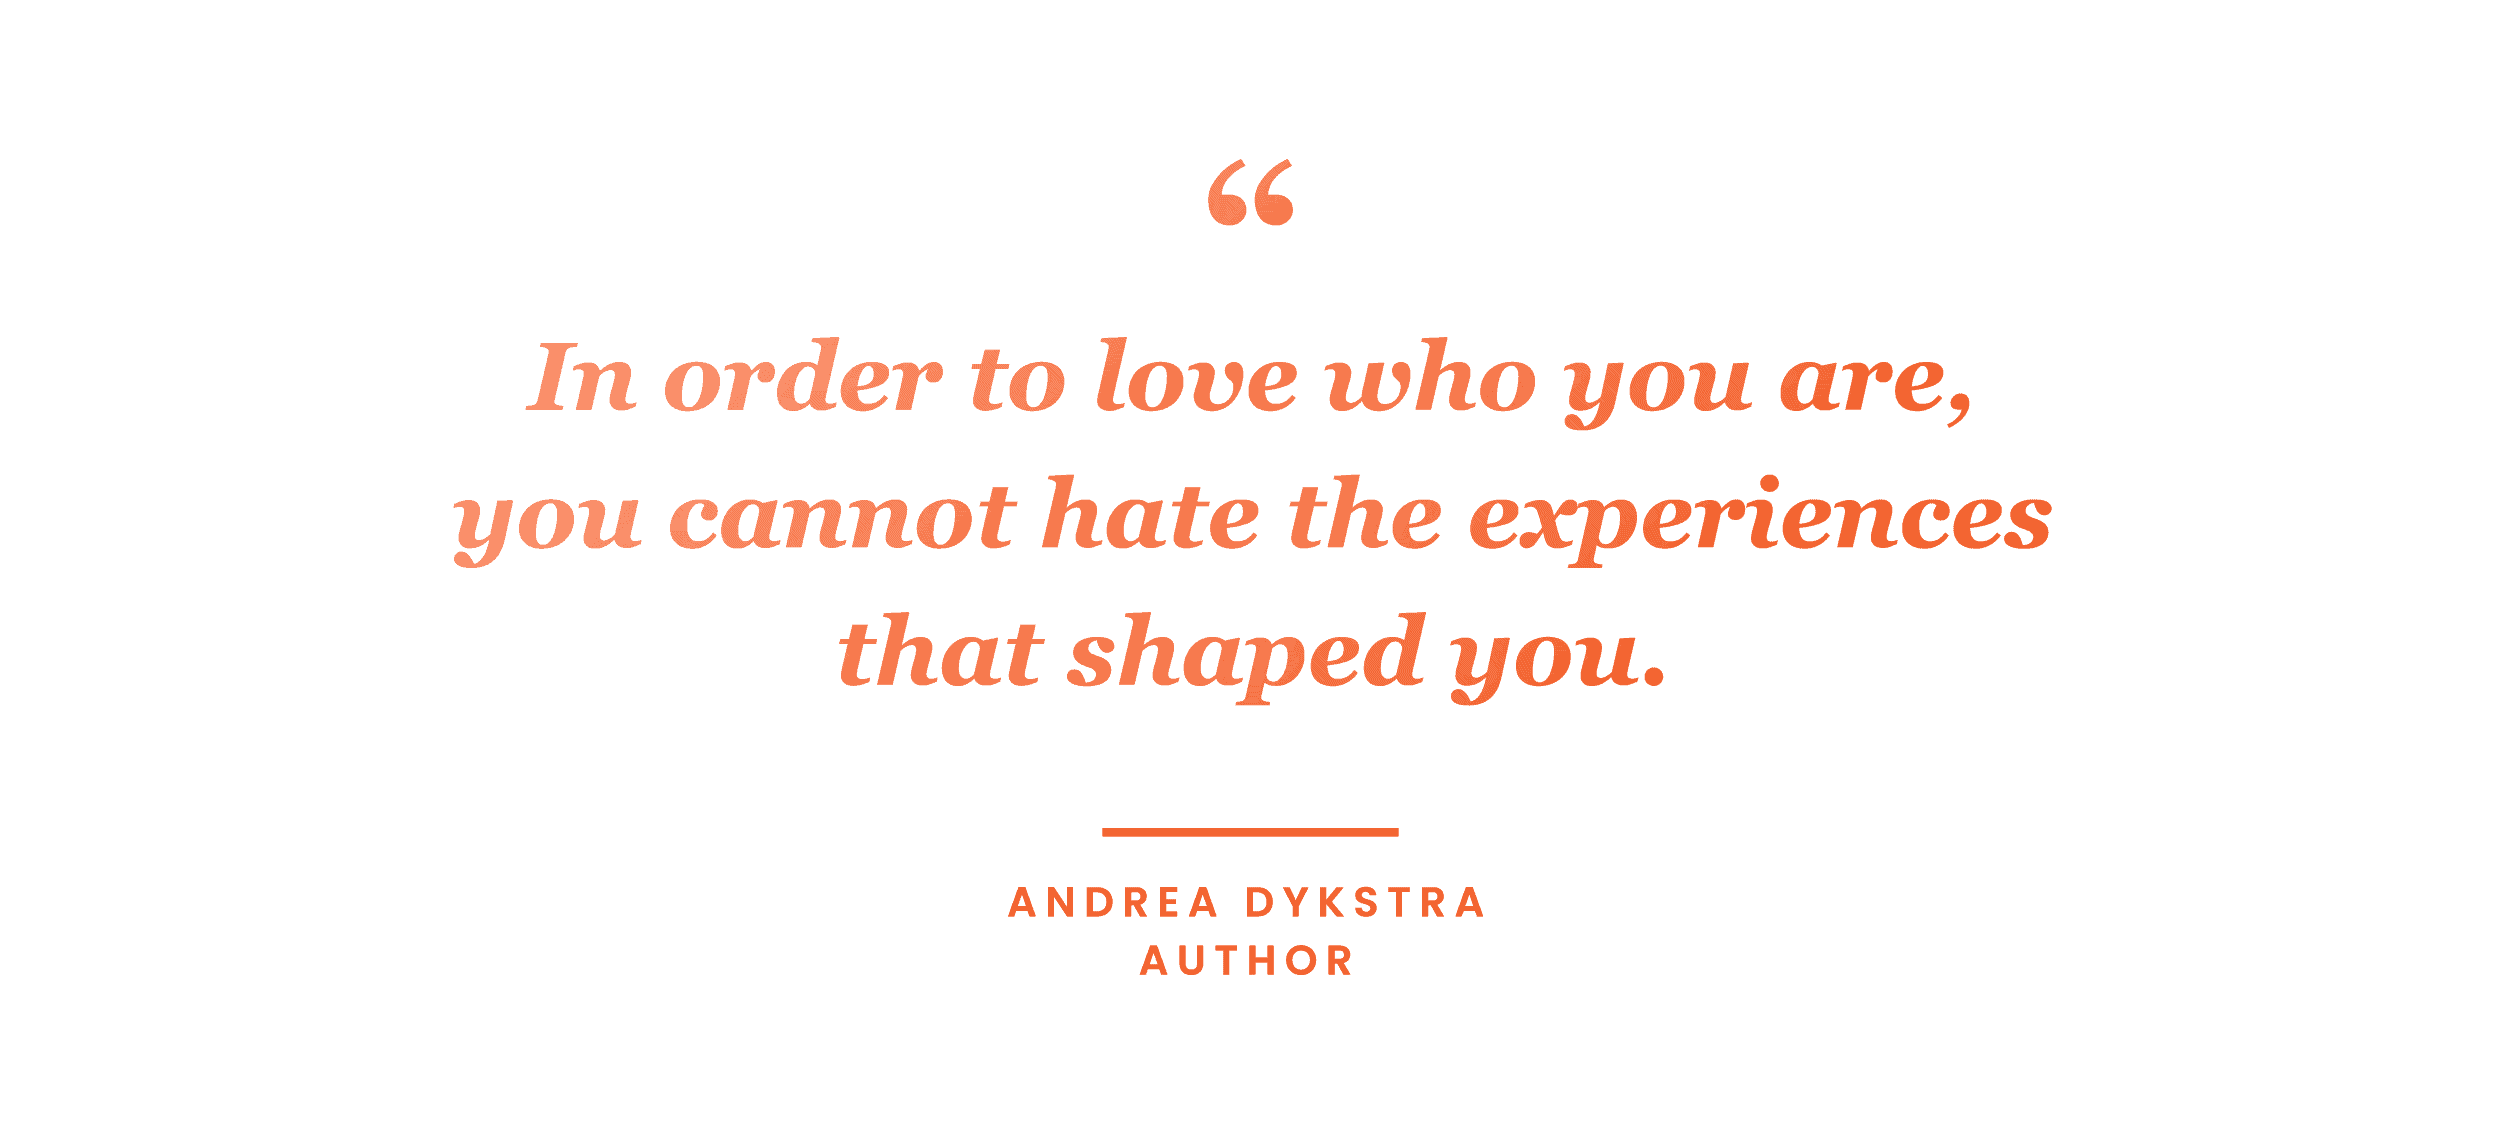 mindfulness quote by Andrea Dykstra